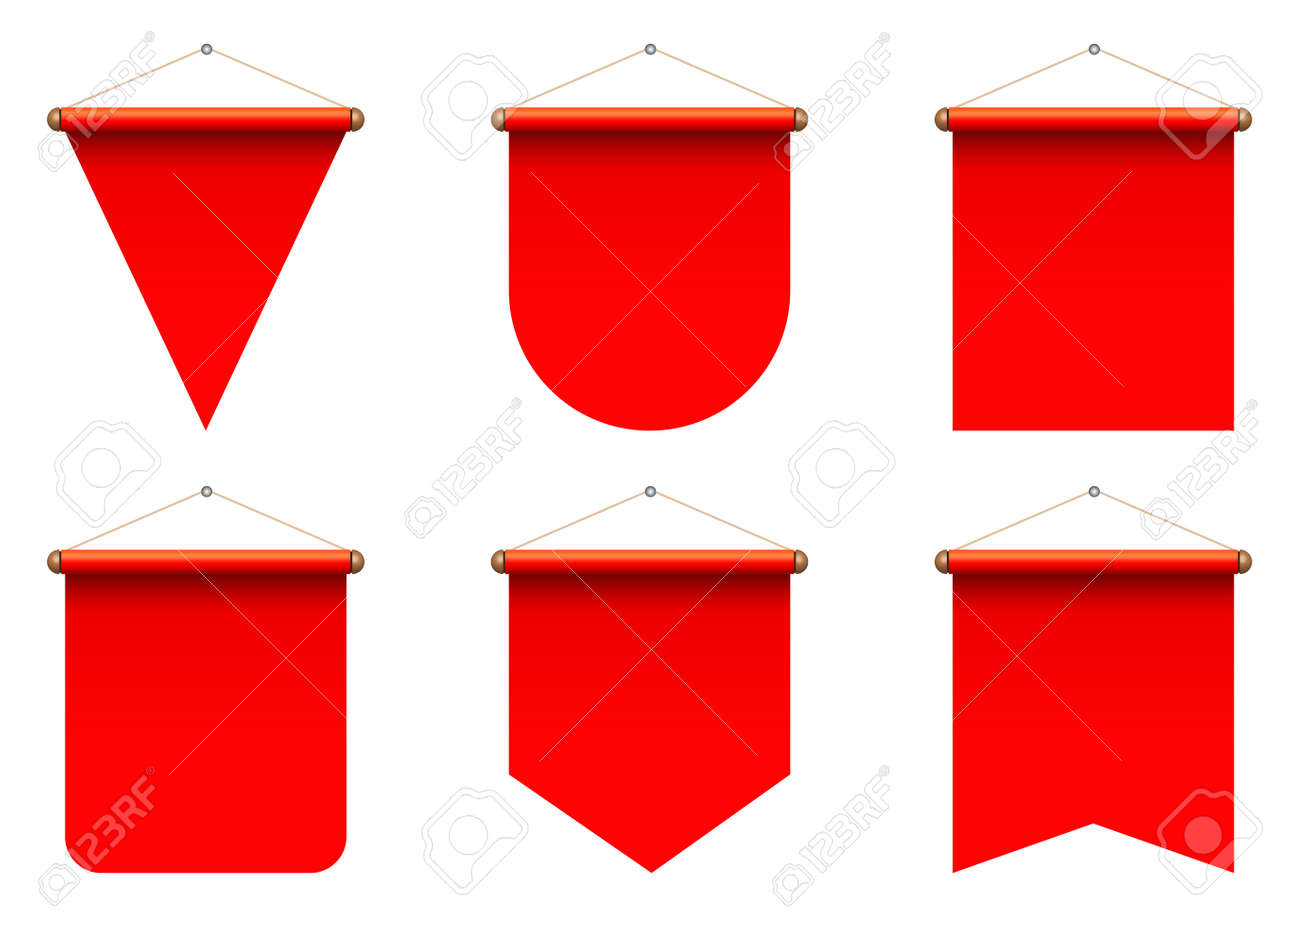 Set of realistic pennant vector illustration - 169550205